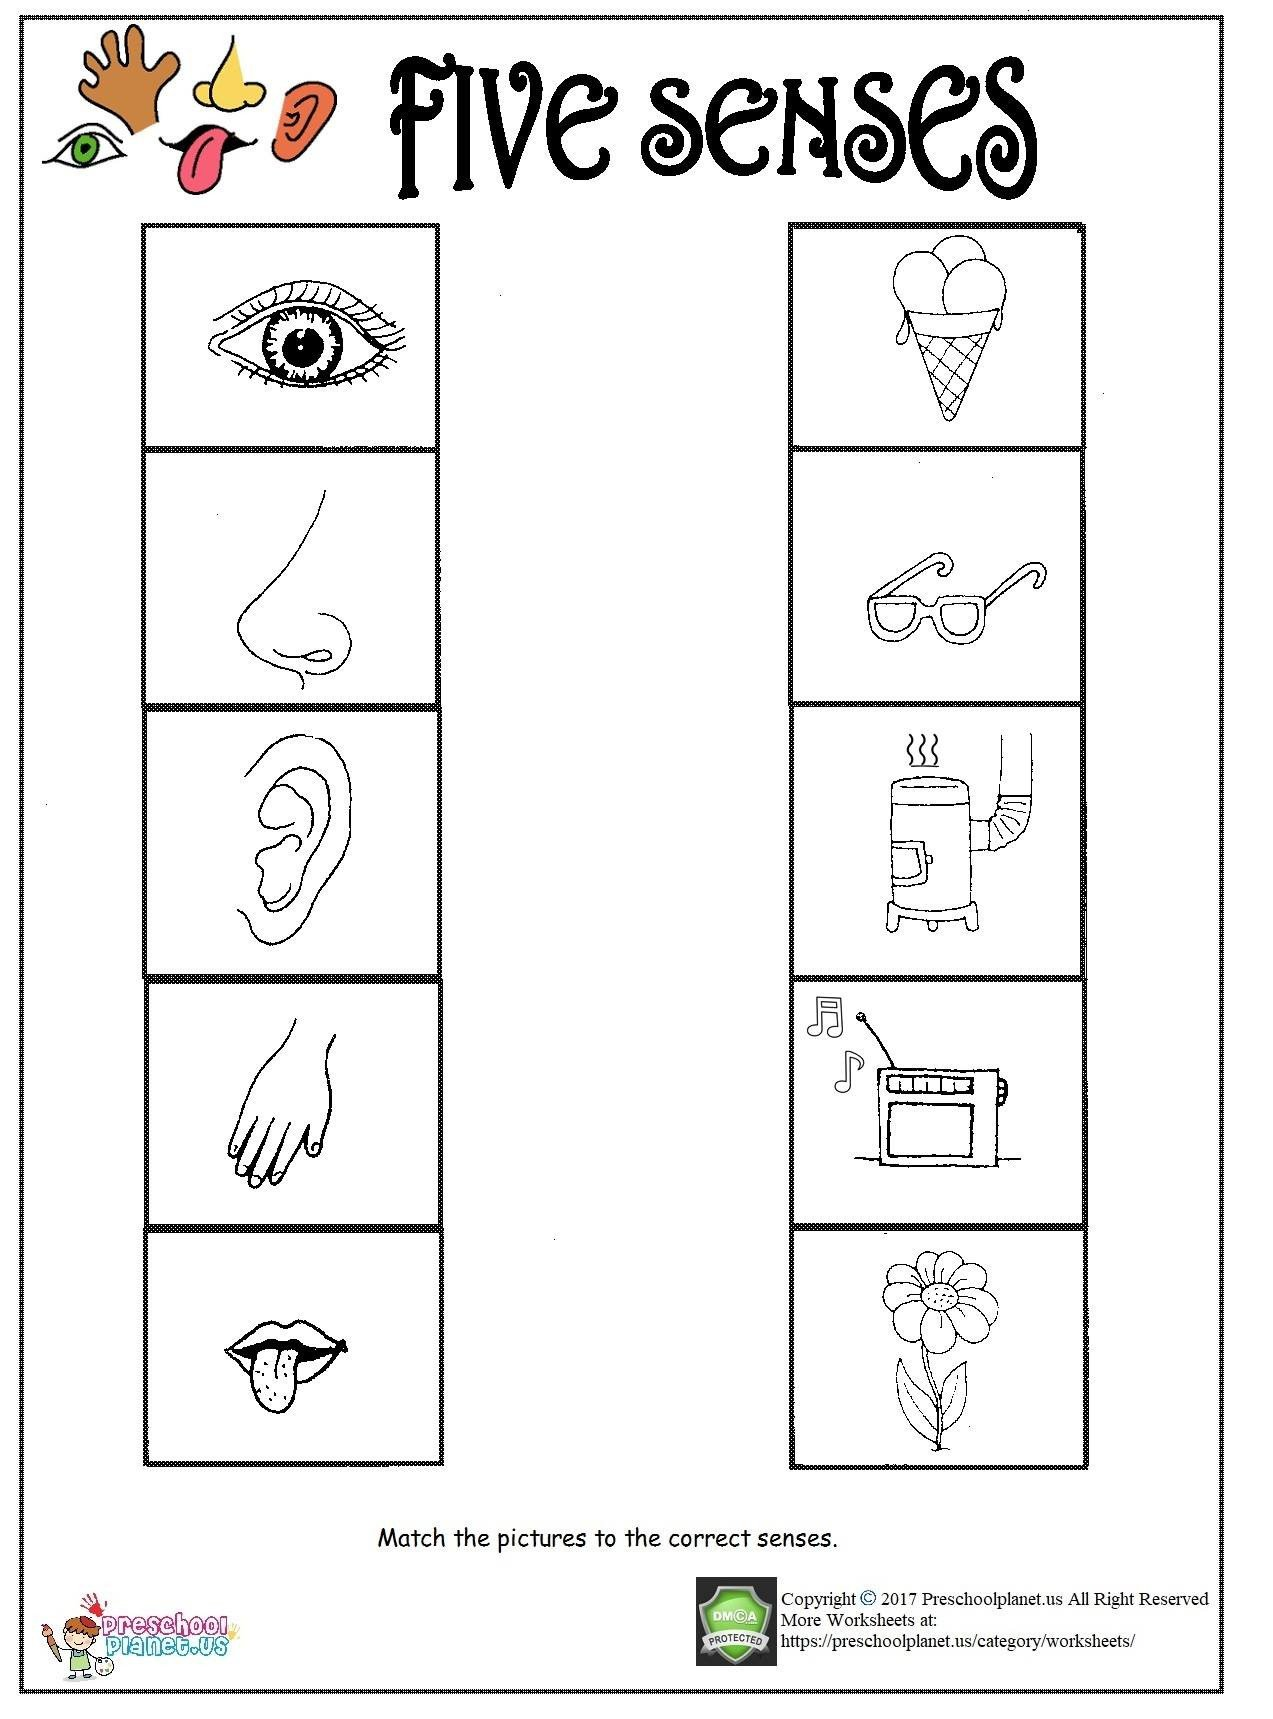 5 Senses Worksheet for Kindergarten Printable Five Senses Worksheet – Preschoolplanet